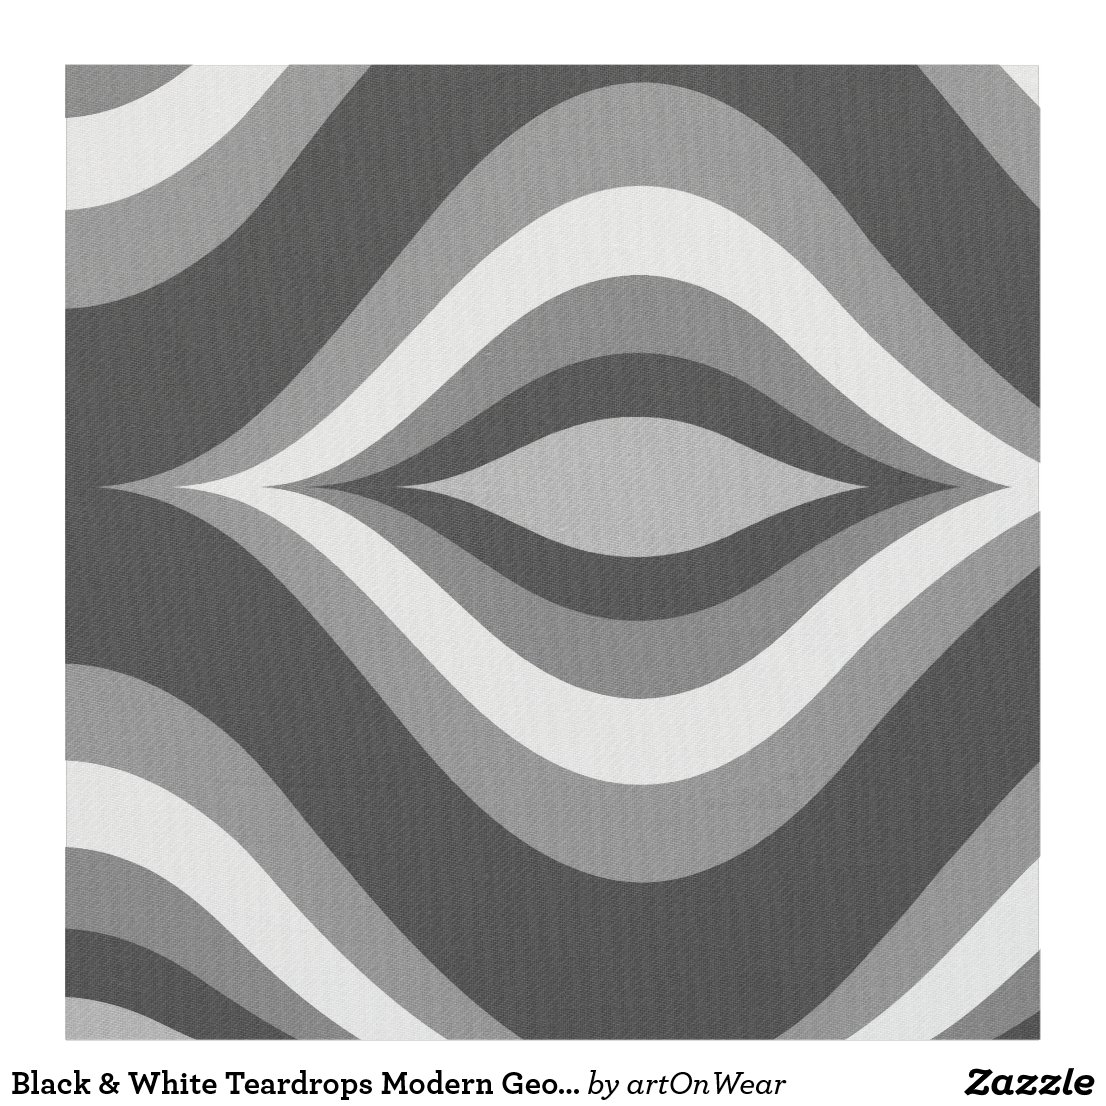 Black & White Teardrops Modern Geometric Pattern